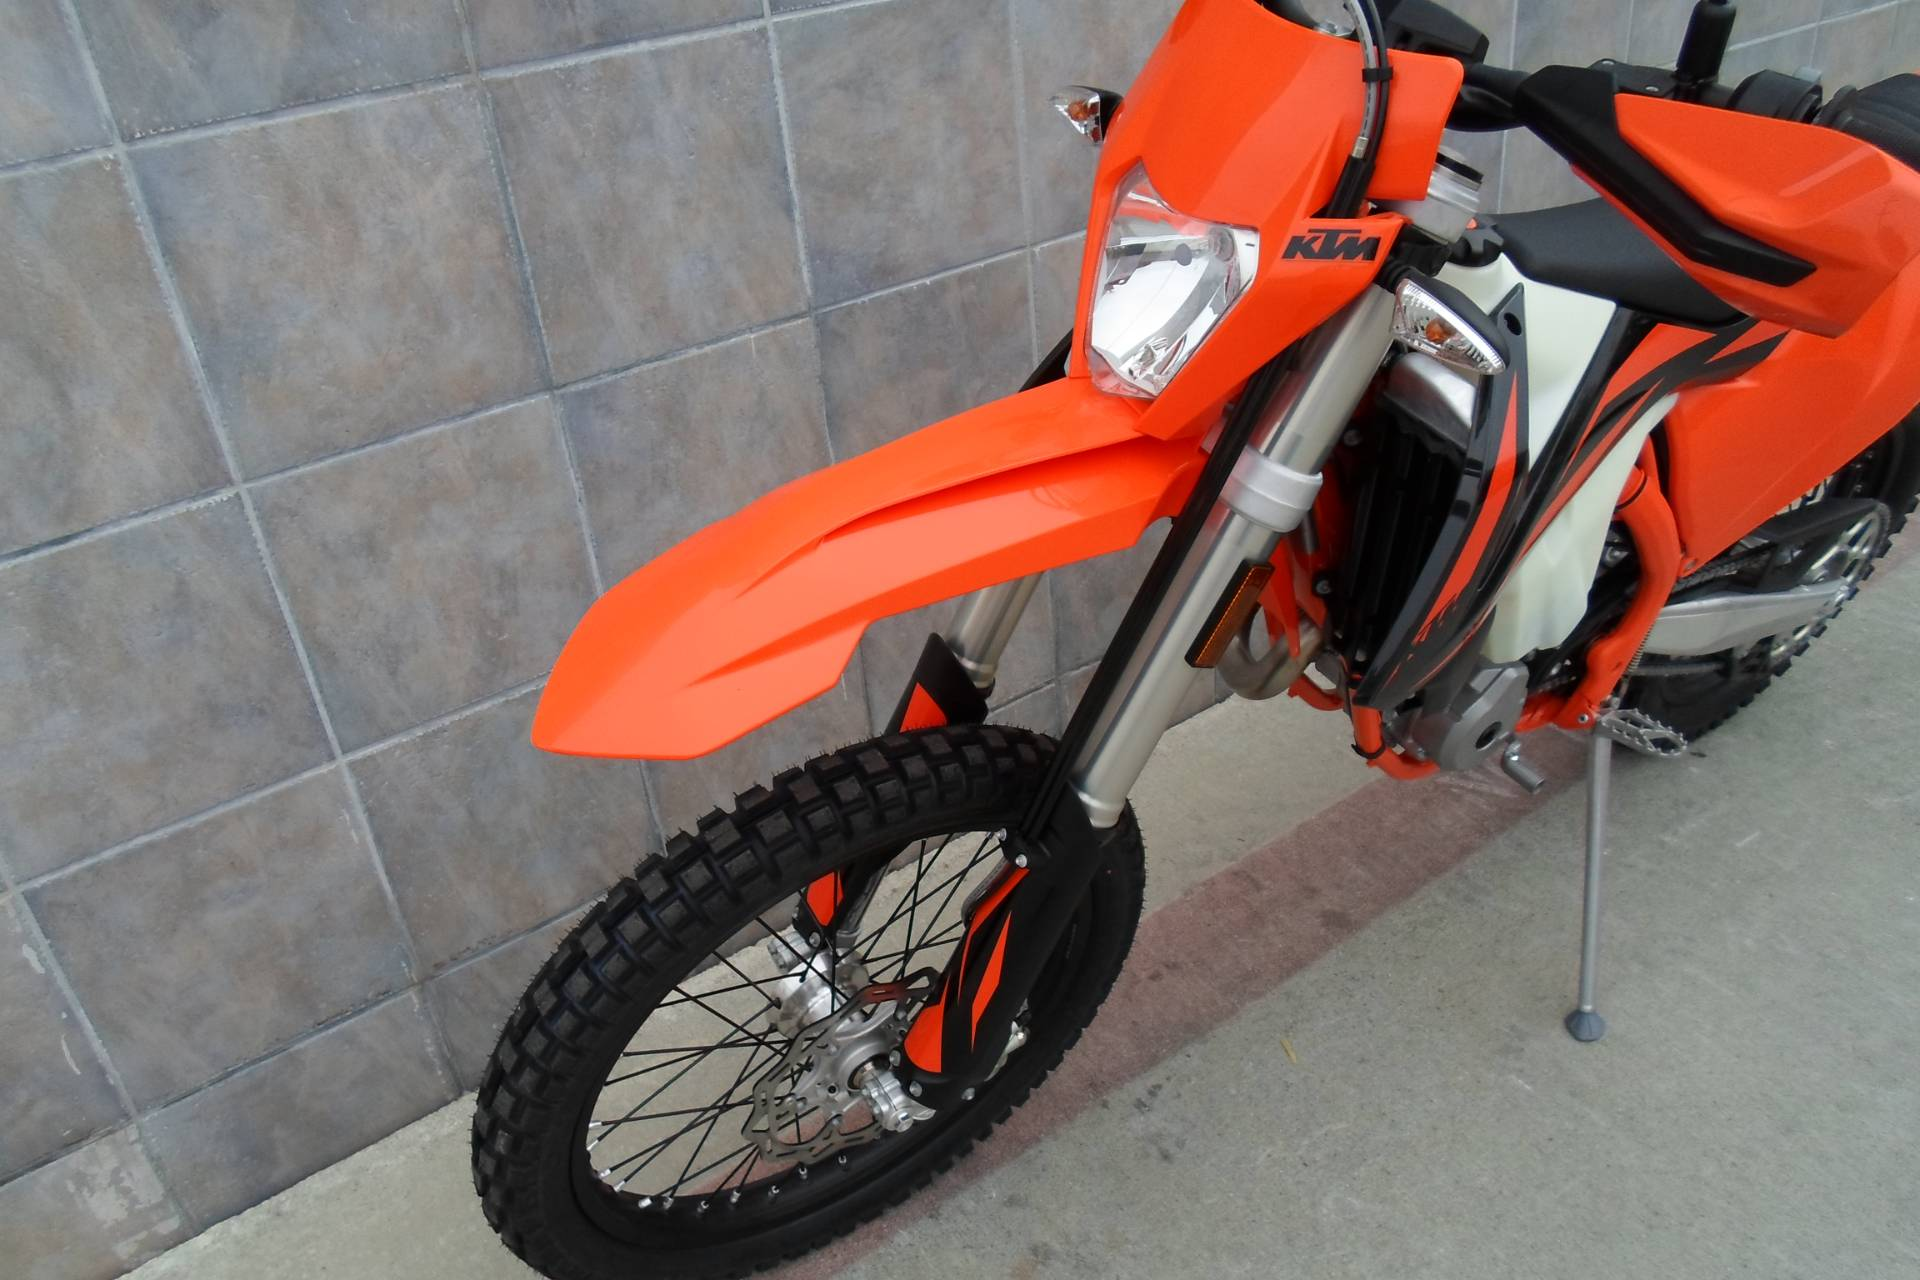 2019 KTM 350 EXC-F in San Marcos, California - Photo 2